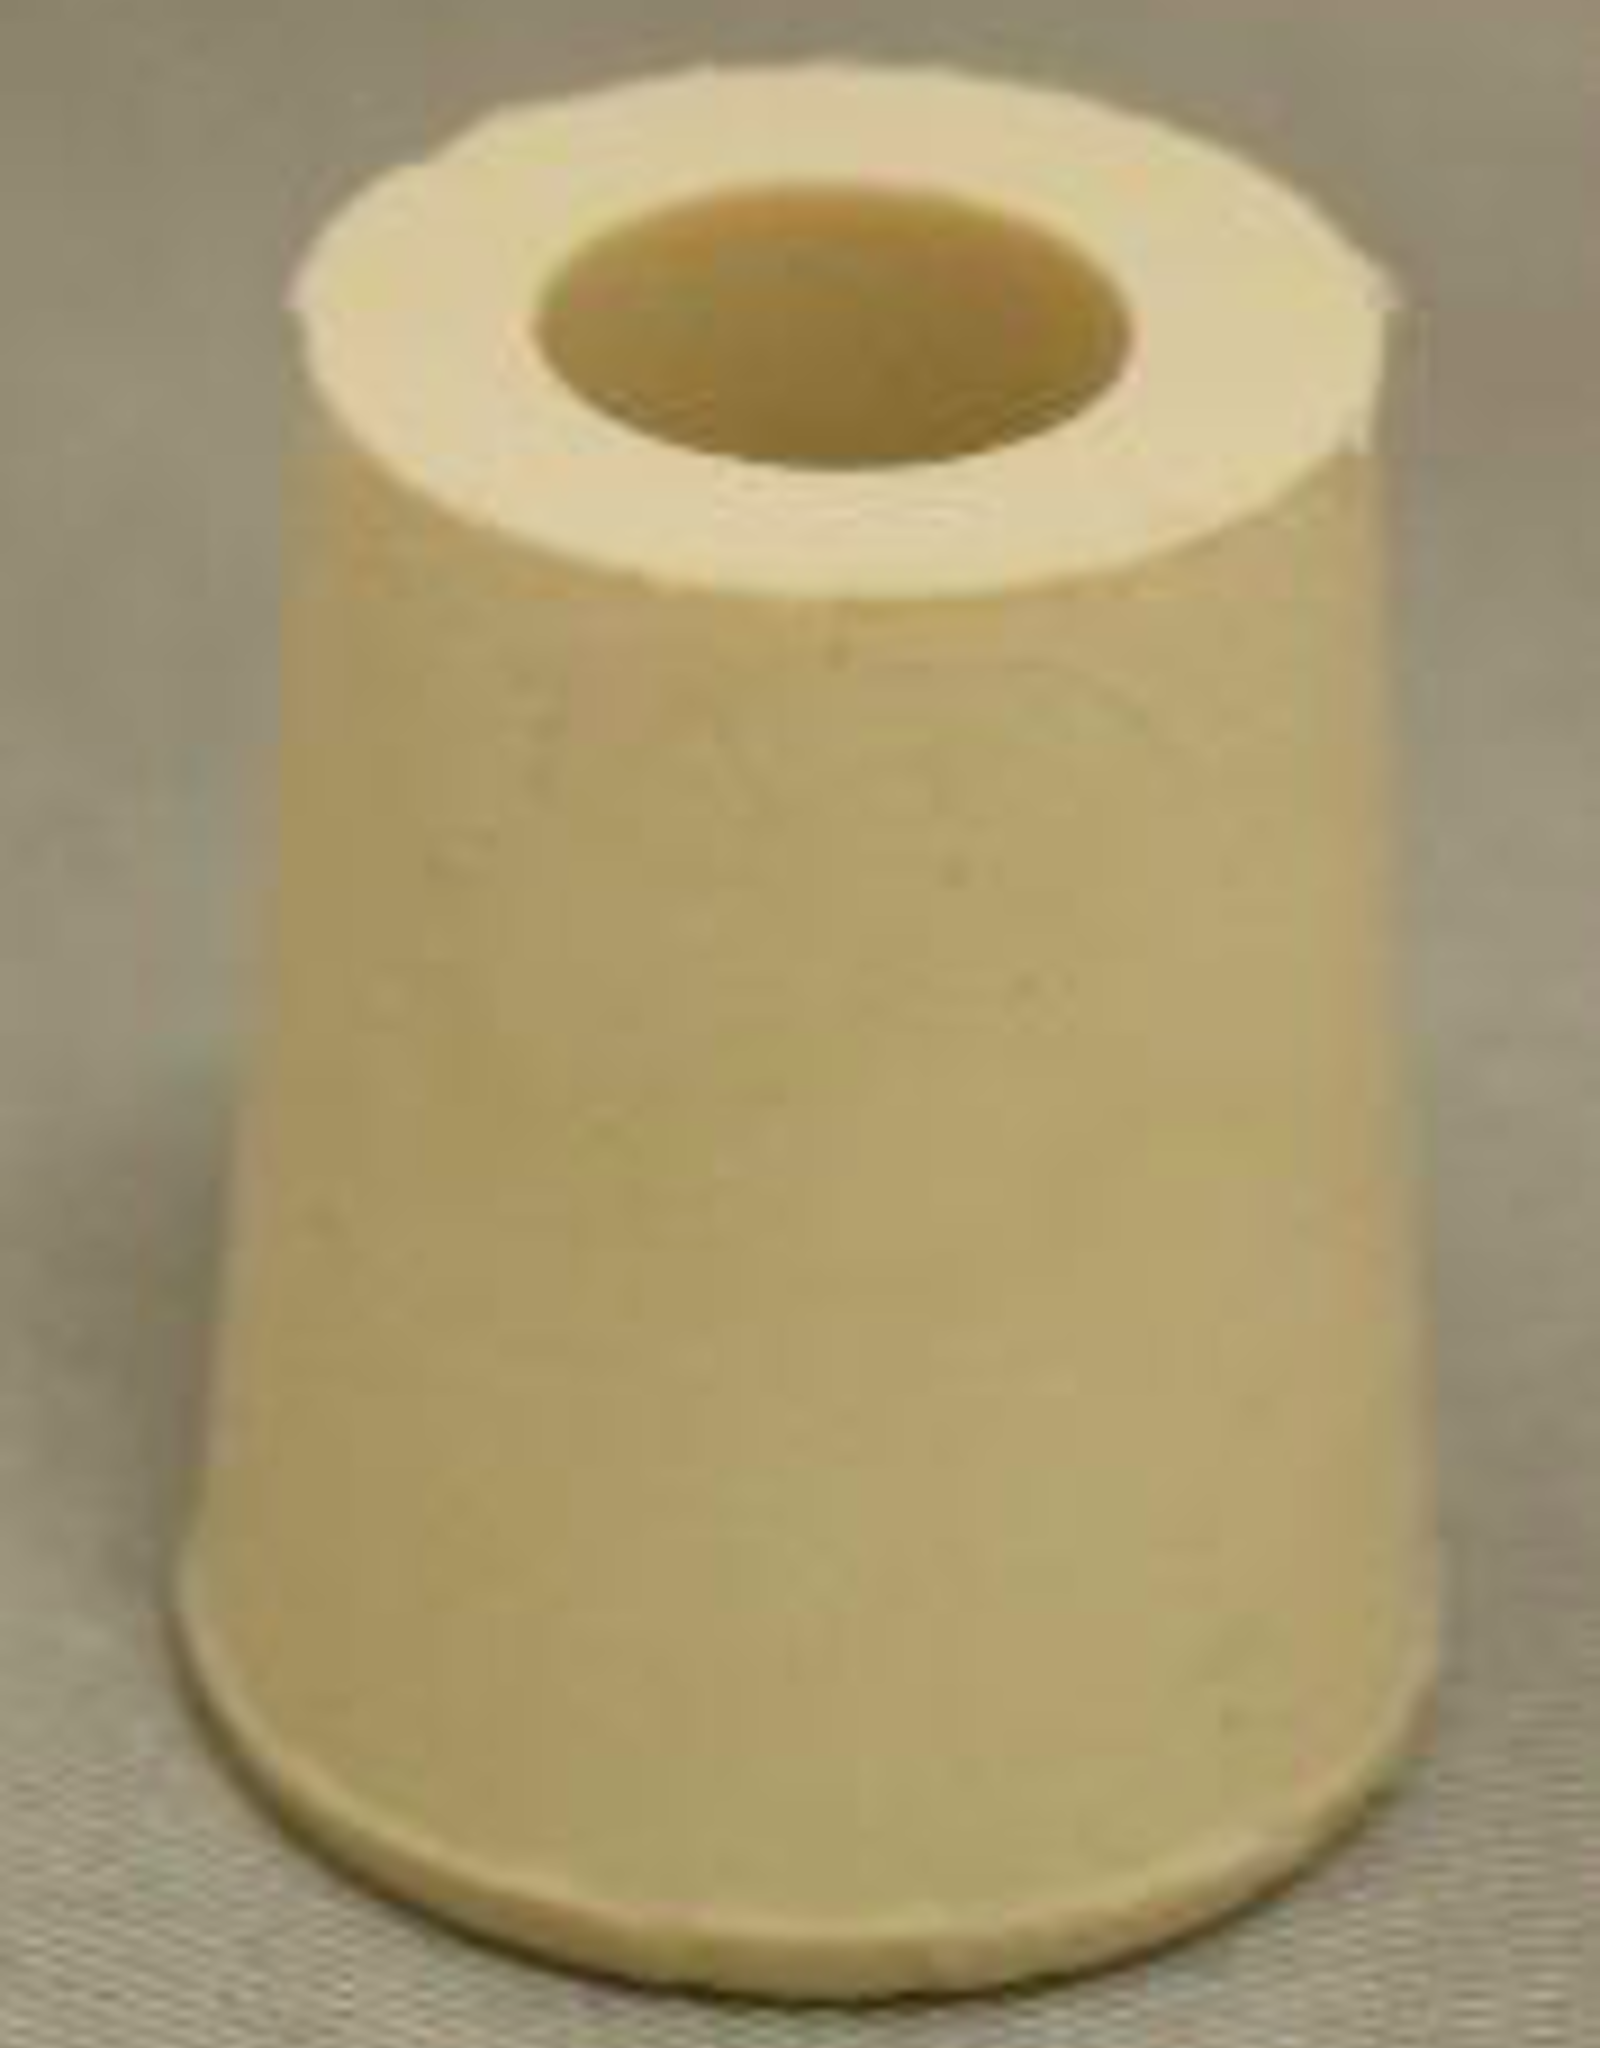 #2 DRILLED RUBBER STOPPER